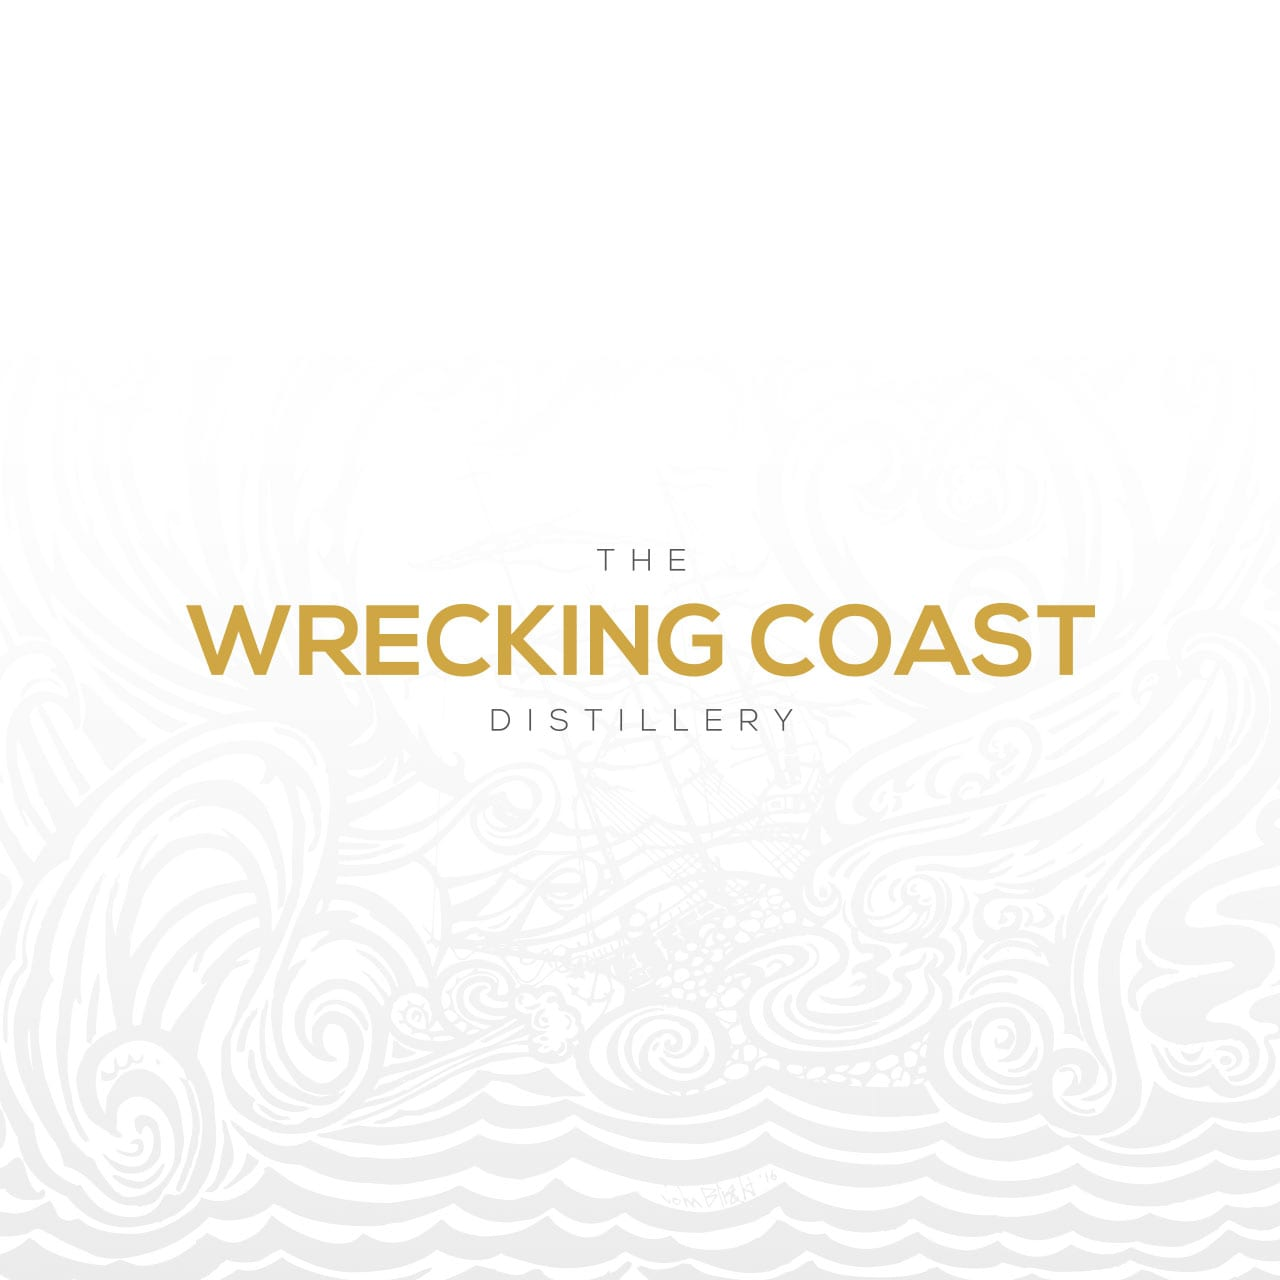 The Wrecking Coast Distillery brand logo on white background